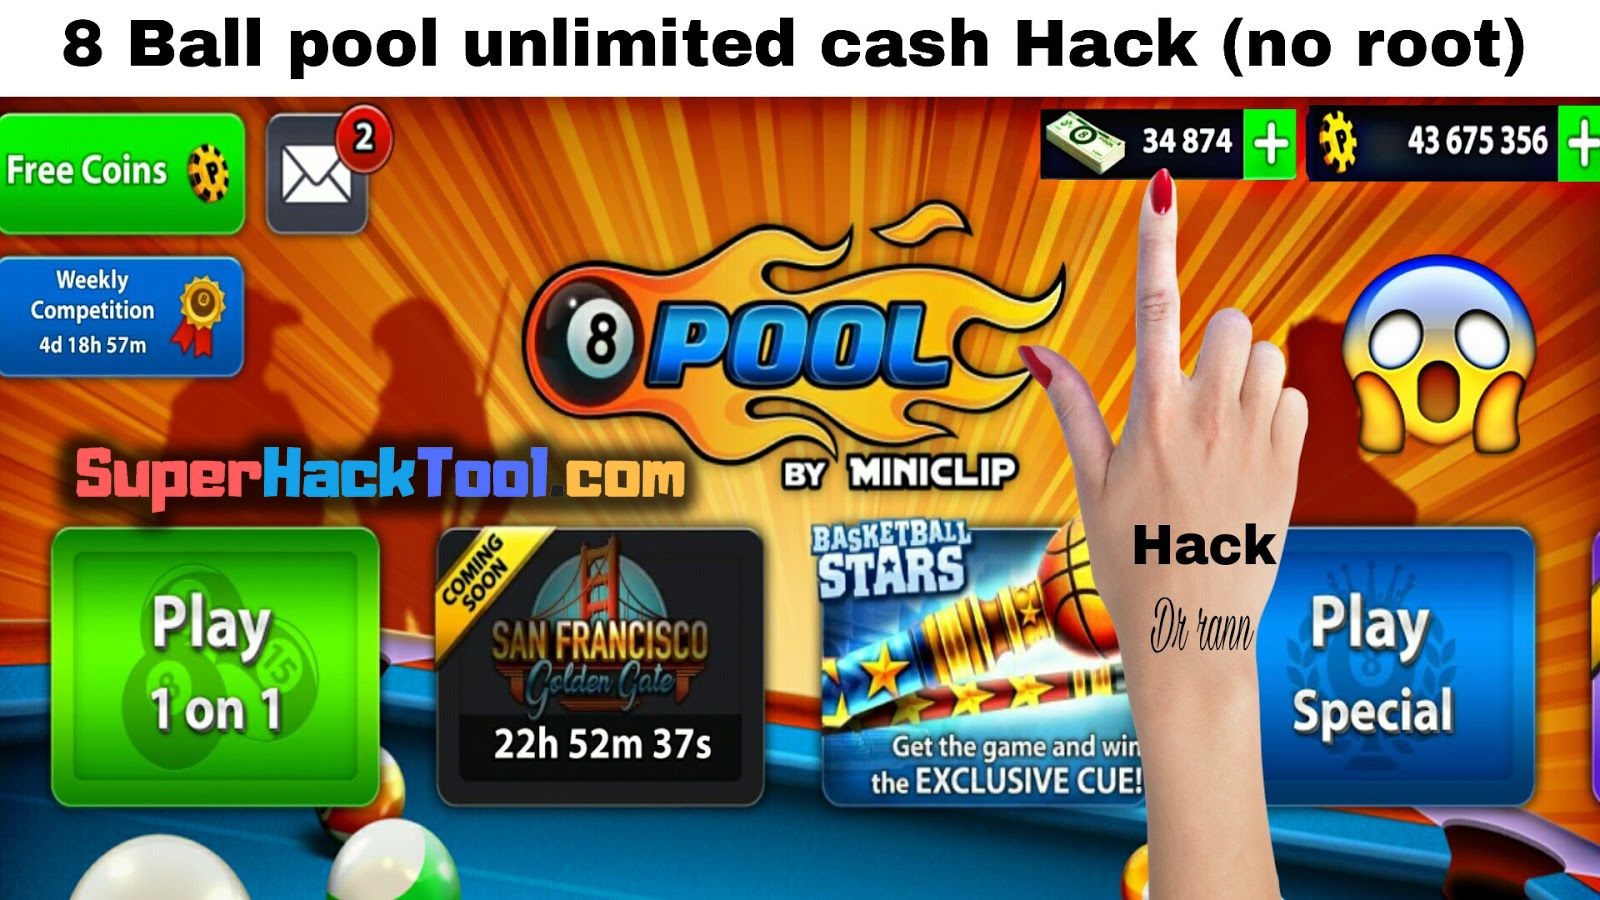 8 Ball Pool Generator App no verification 8 ball pool cheats and hack free cash and